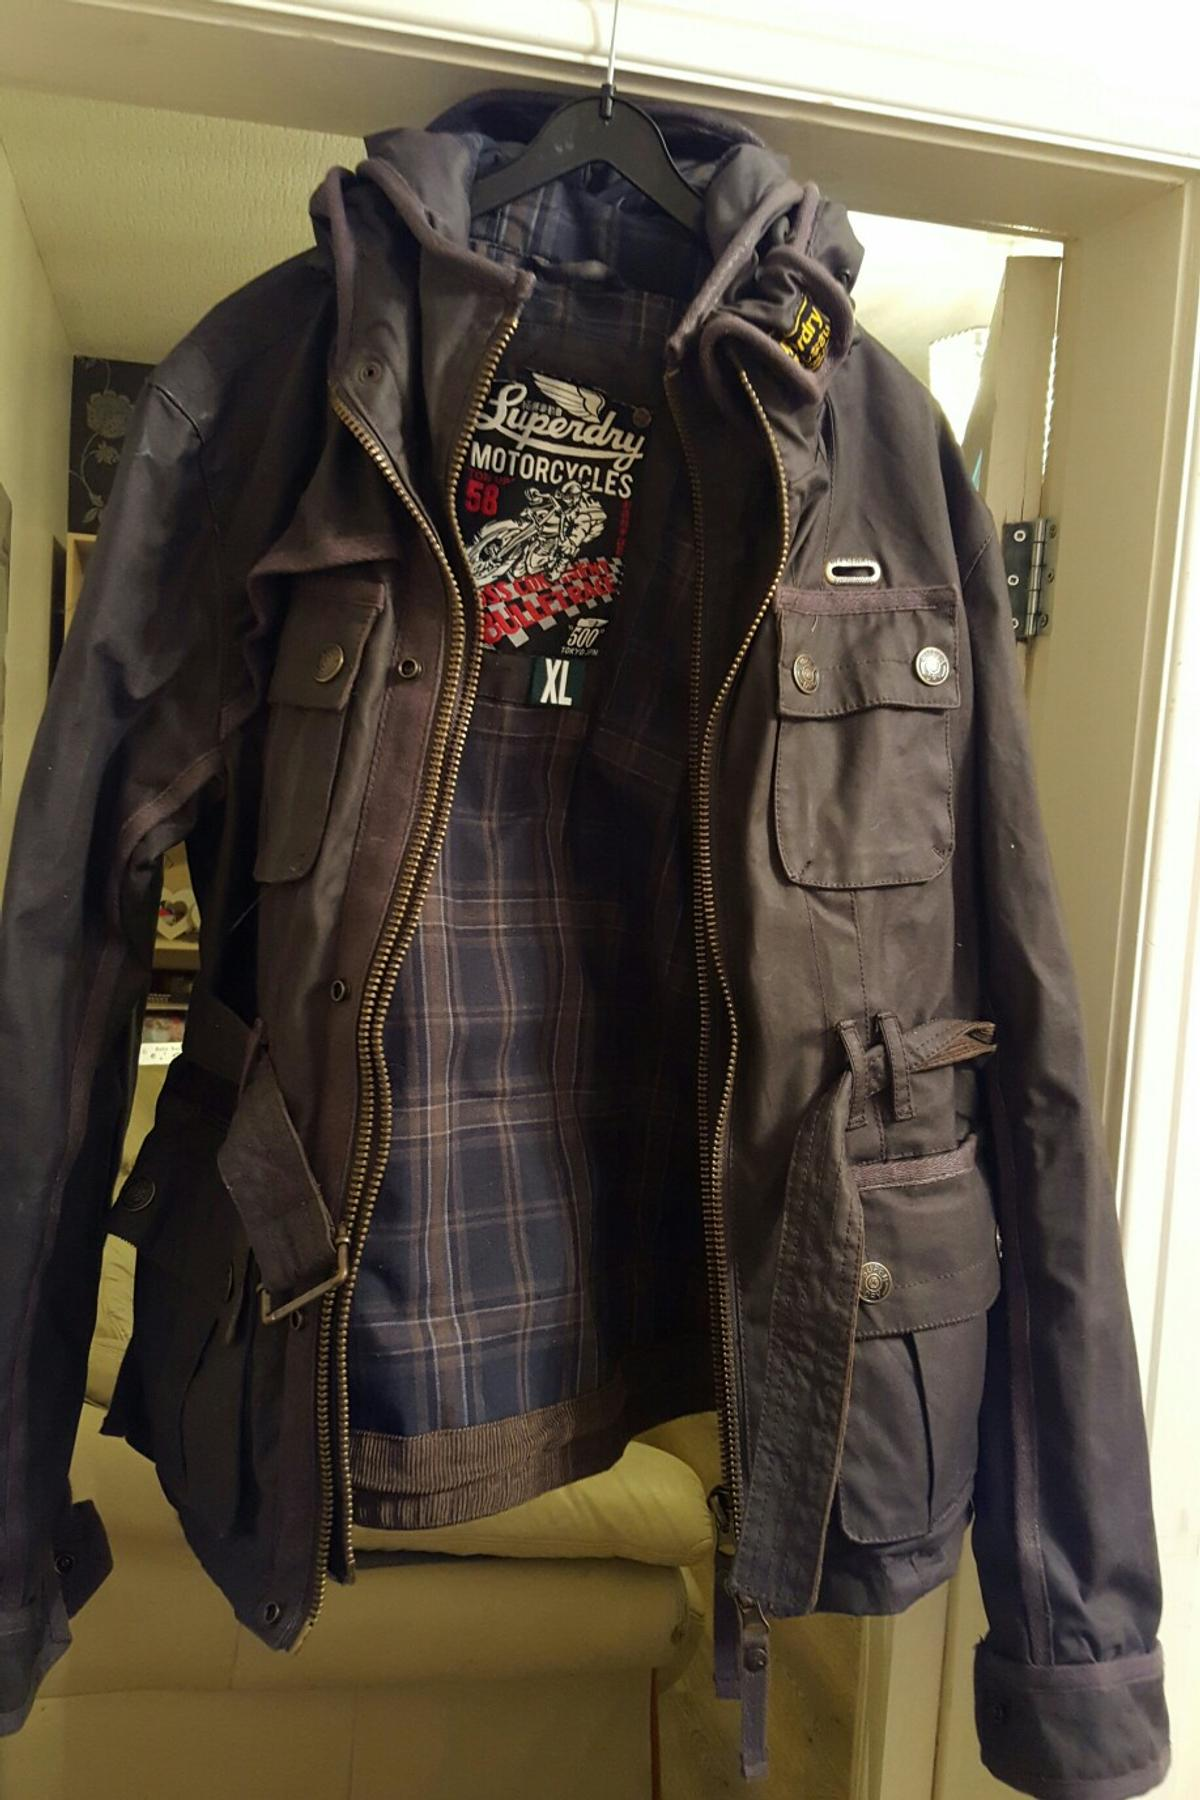 SuperDry Motorcycles ton up 58 waxed cotton